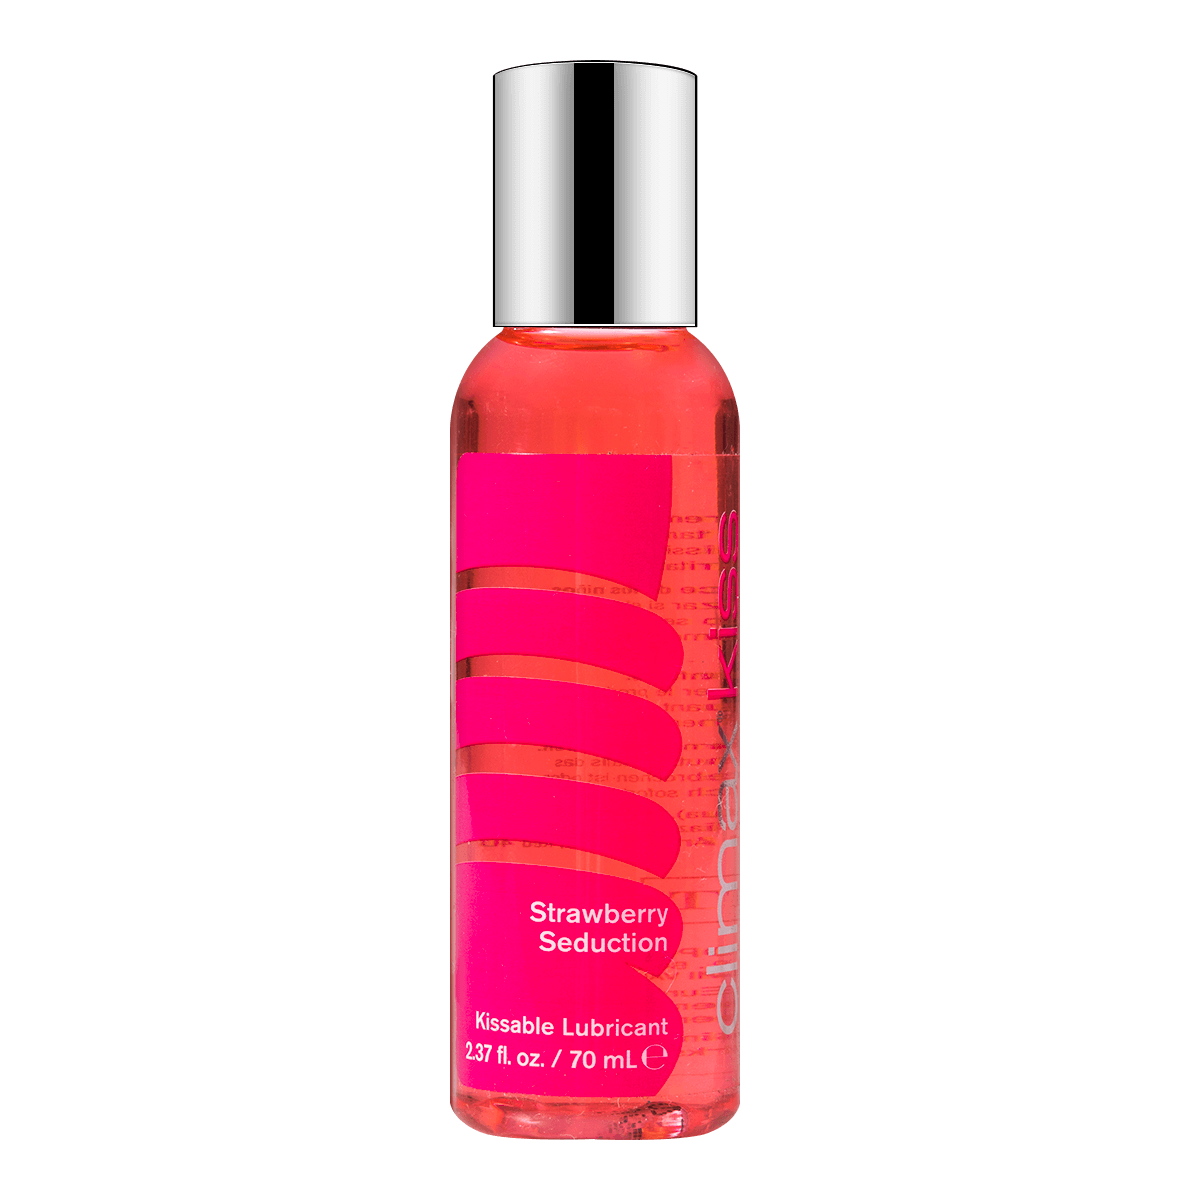 Adult toy TOPCO SALES CLIMAX Kiss Strawberry Seduction Kissable Lubricant 70ml